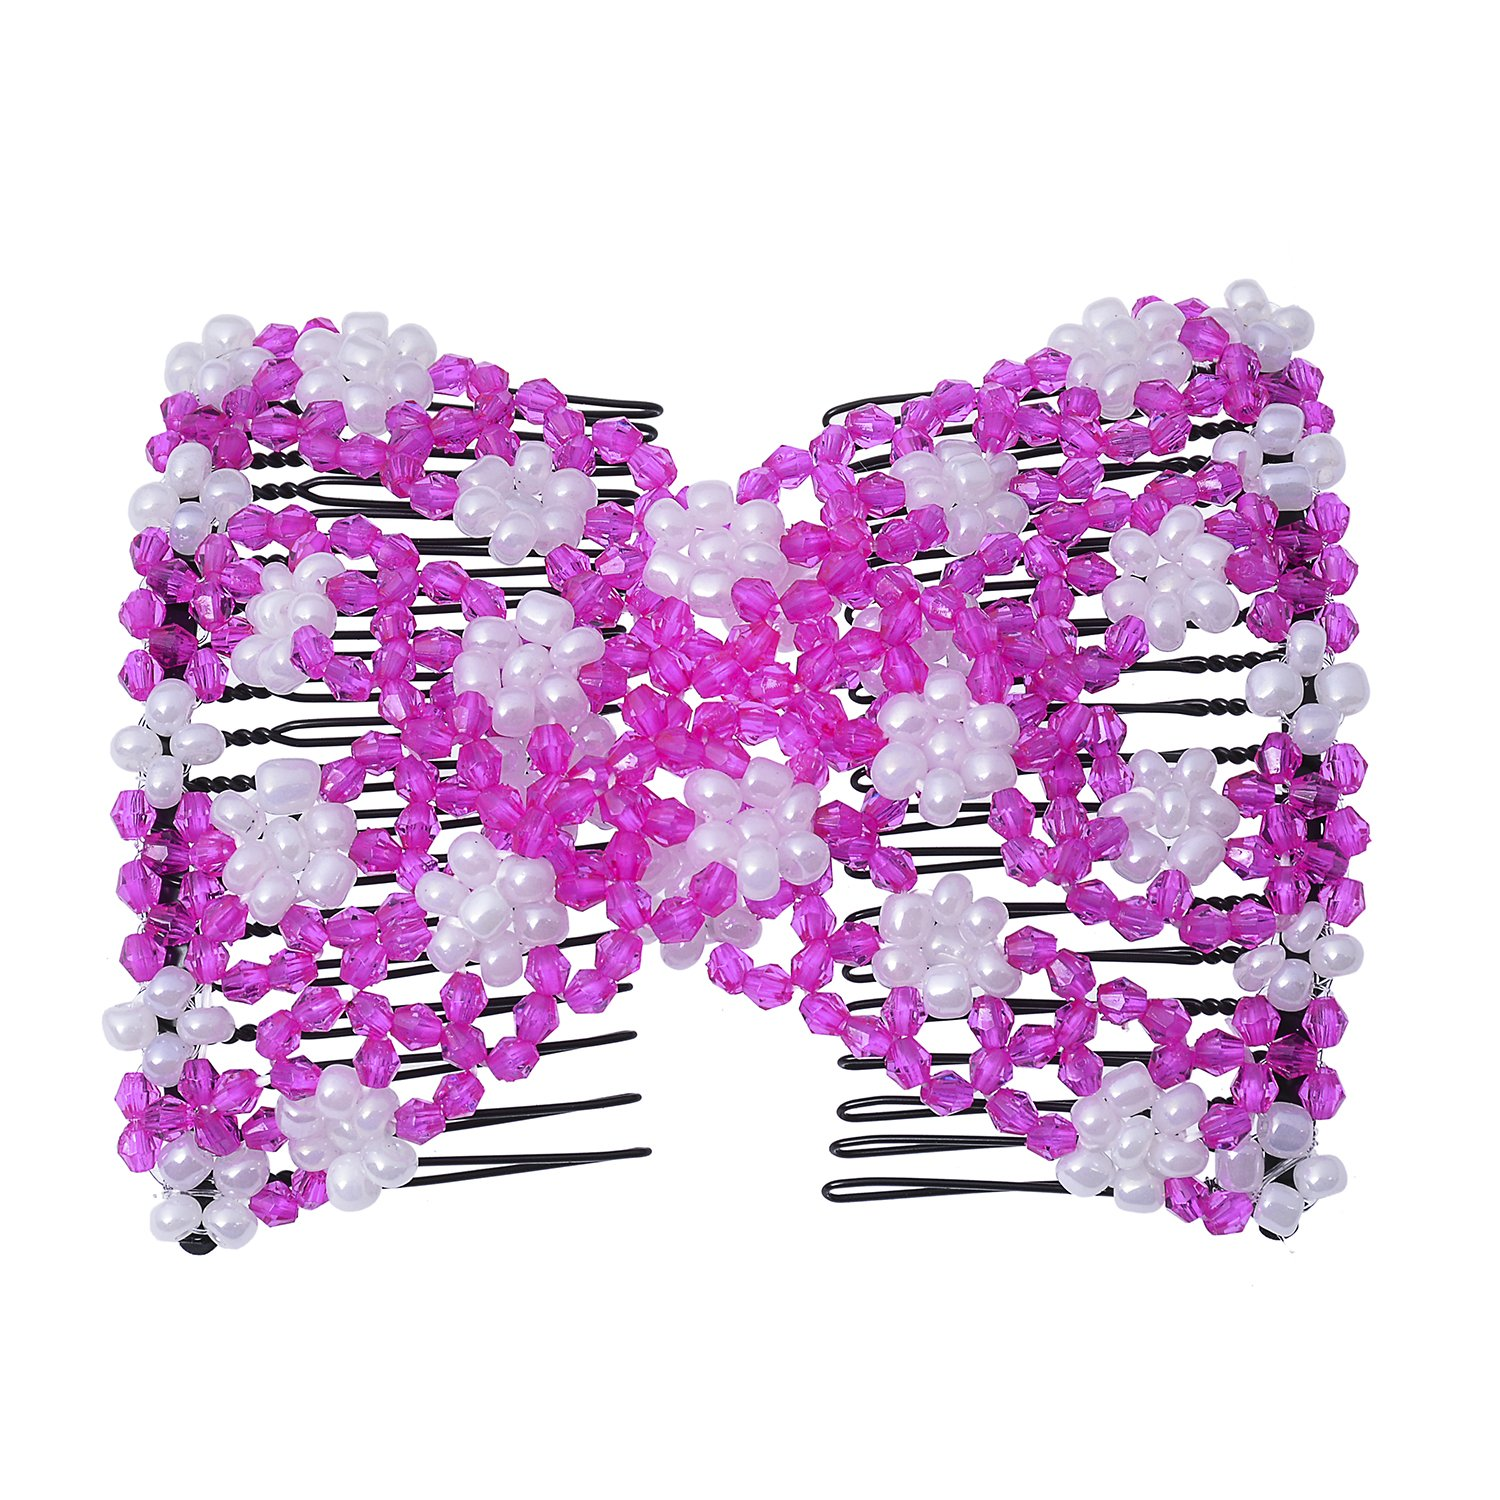 Casualfashion Magic Hair Comb, Perfect for Easy Ponytails, UpDos and Twists, Hair Accessory with Plastic Double Combs Clips wf-4501-5001